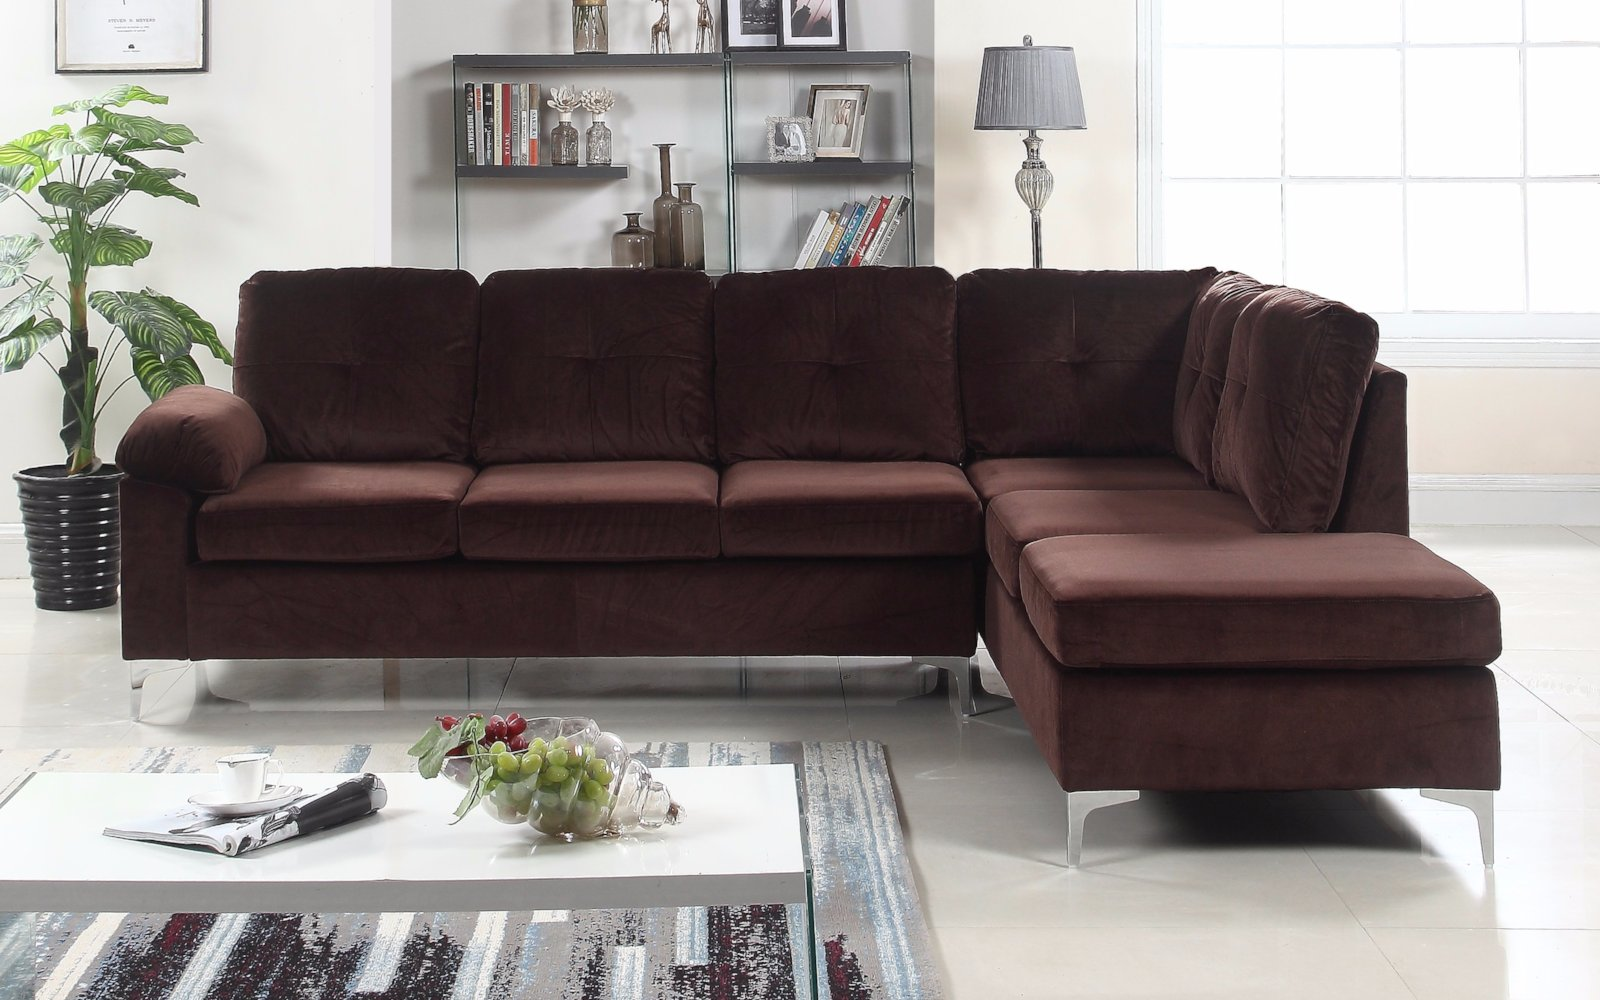 Gentil Helsinki Modern Tufted Brush Microfiber Sectional Sofa Brown Lifestyle ...